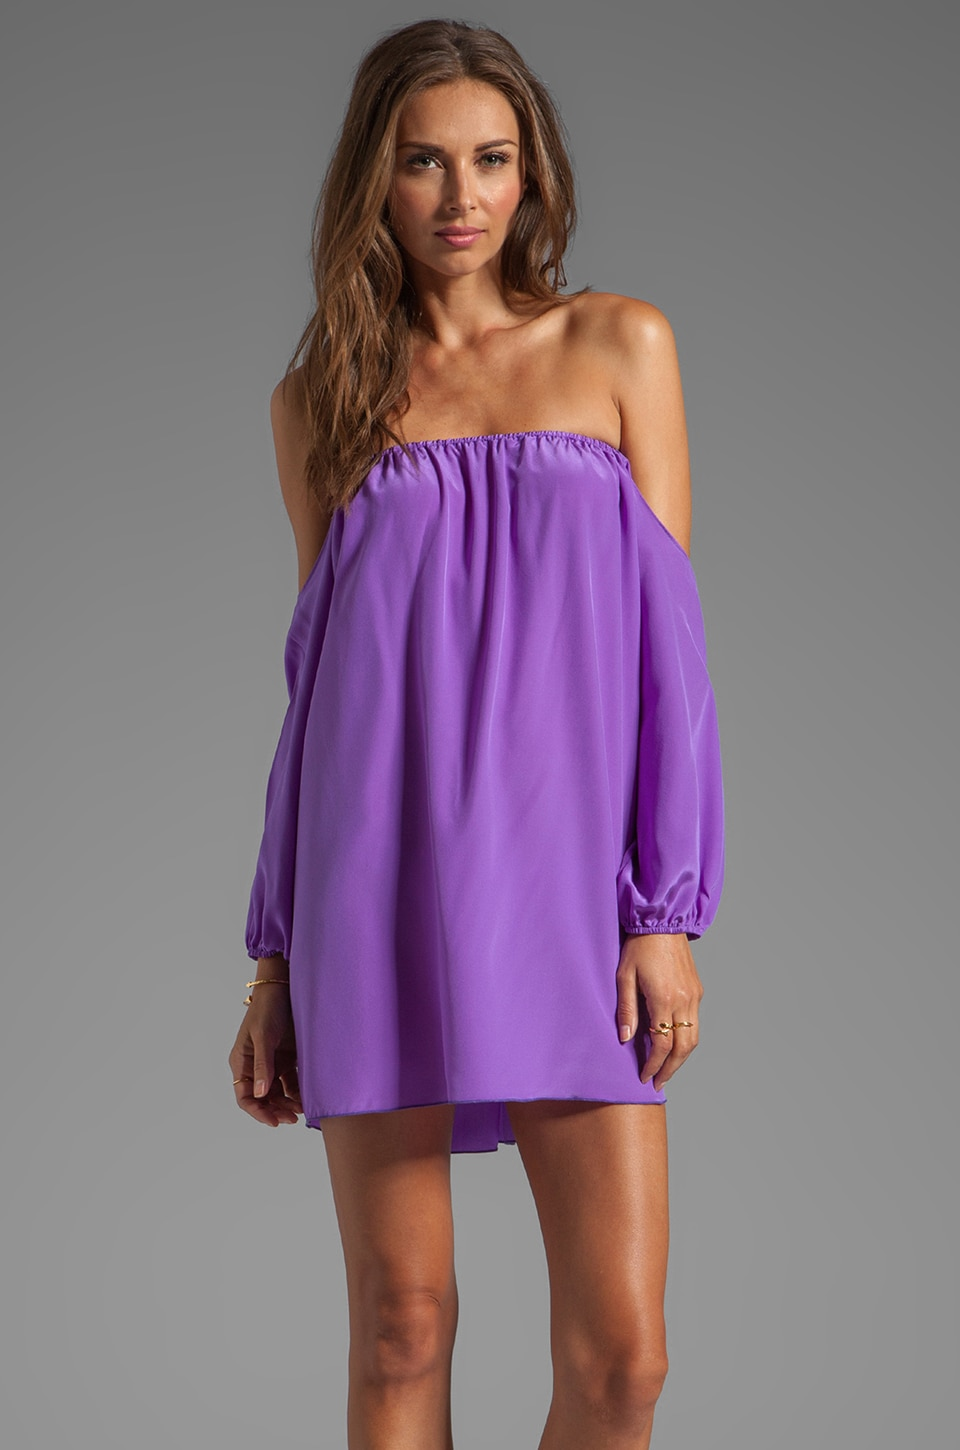 Boulee Audrey Dress in Purple